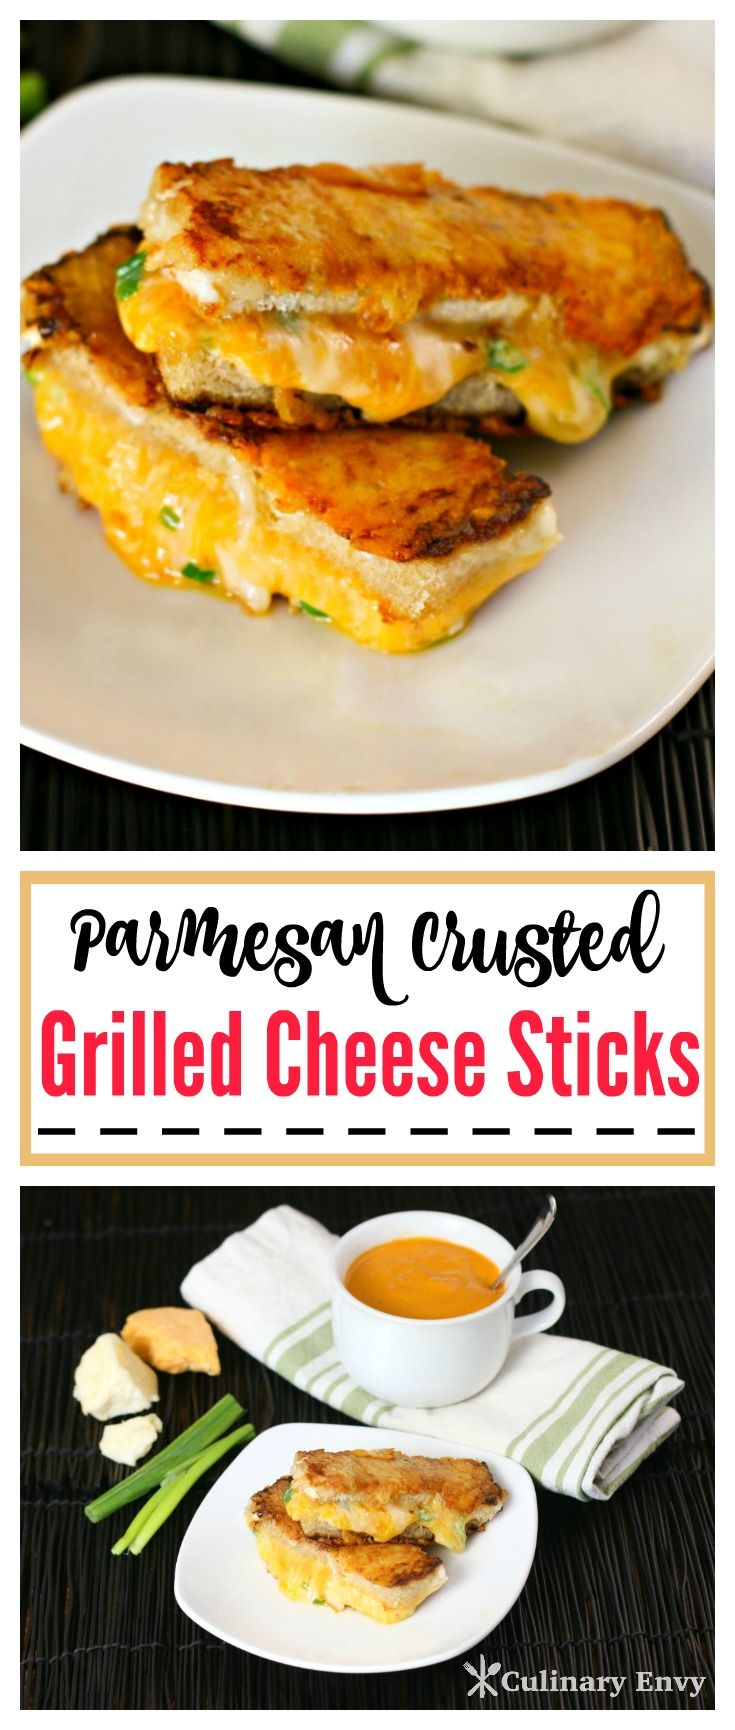 These perfectly golden brown toasty, buttery Parmesan crusted Grilled Cheese Sticks are filled with 2 ooey gooey melted cheeses…plus a few more surprises!  Click to read more or Pin & Save for later!